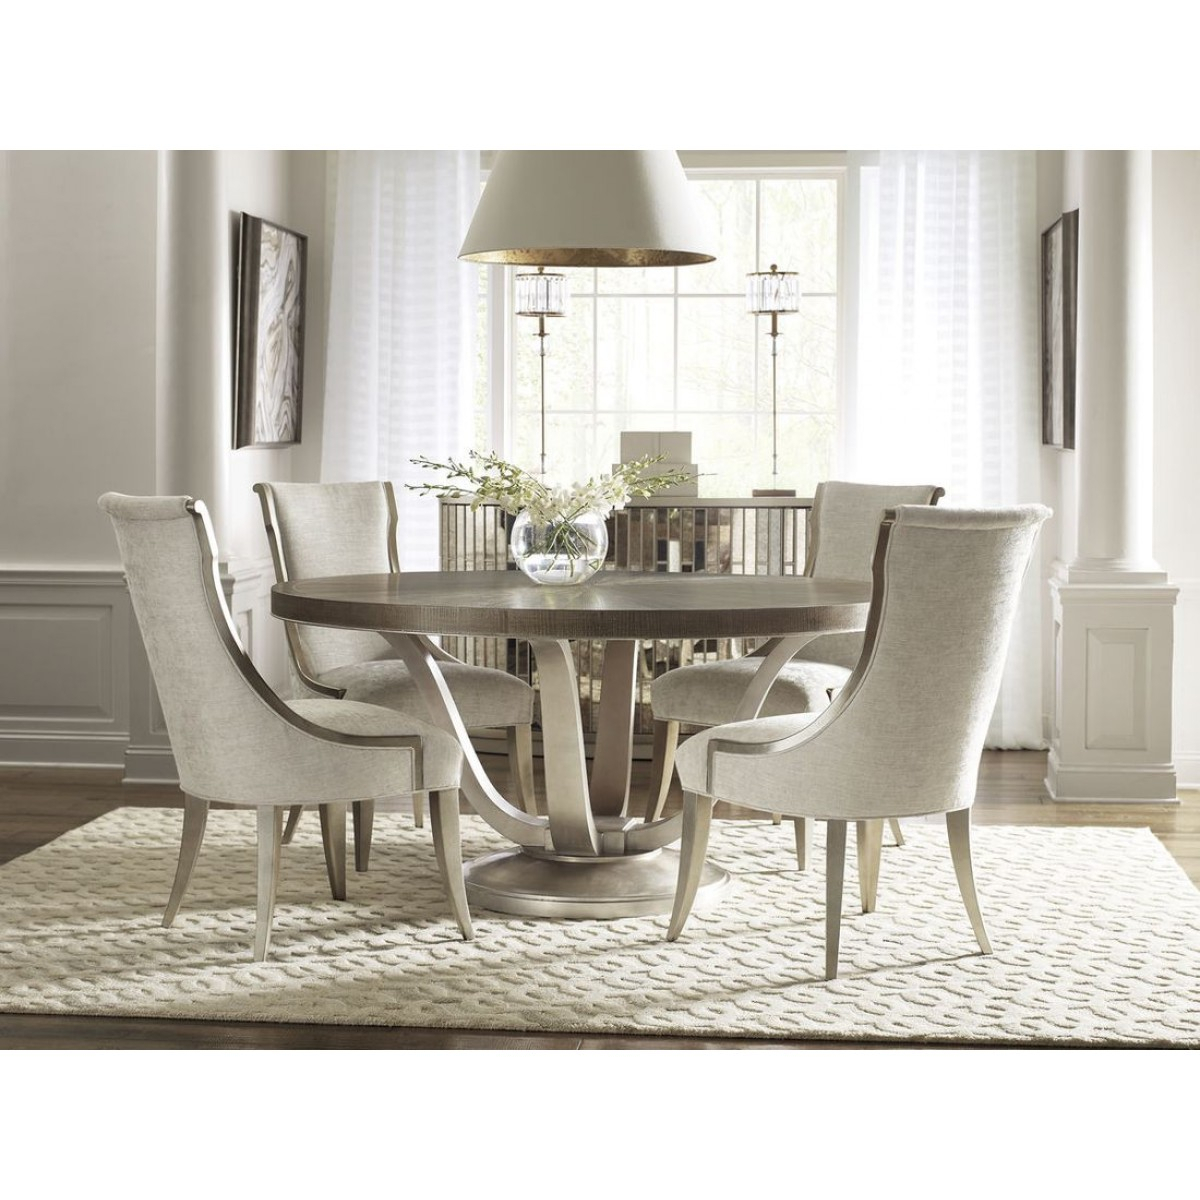 Caracole Avondale 5Pc Round Dining Table Set With Regard To Newest Avondale Dining Tables (View 3 of 25)